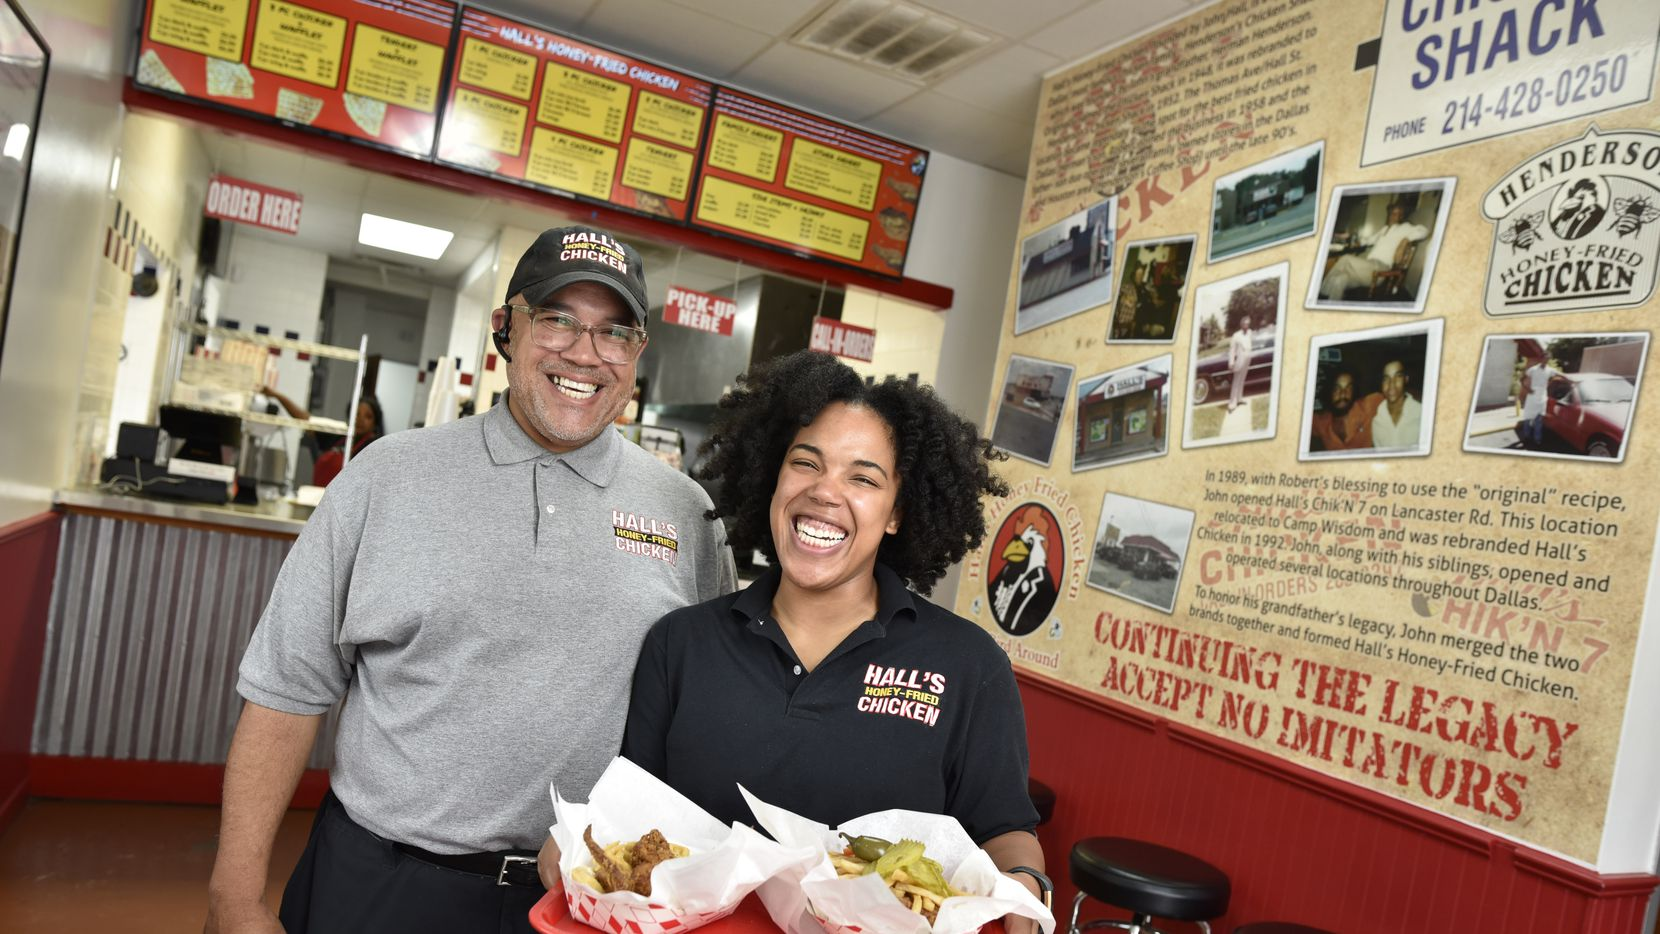 John Hall, founder of Hall's Honey Fried Chicken, and his daughter Mackenzie Hall, owner of Hall's Honey Fried Chicken at the Medical District location in Dallas on Oct. 14, 2019. Ben Torres/Special Contributor